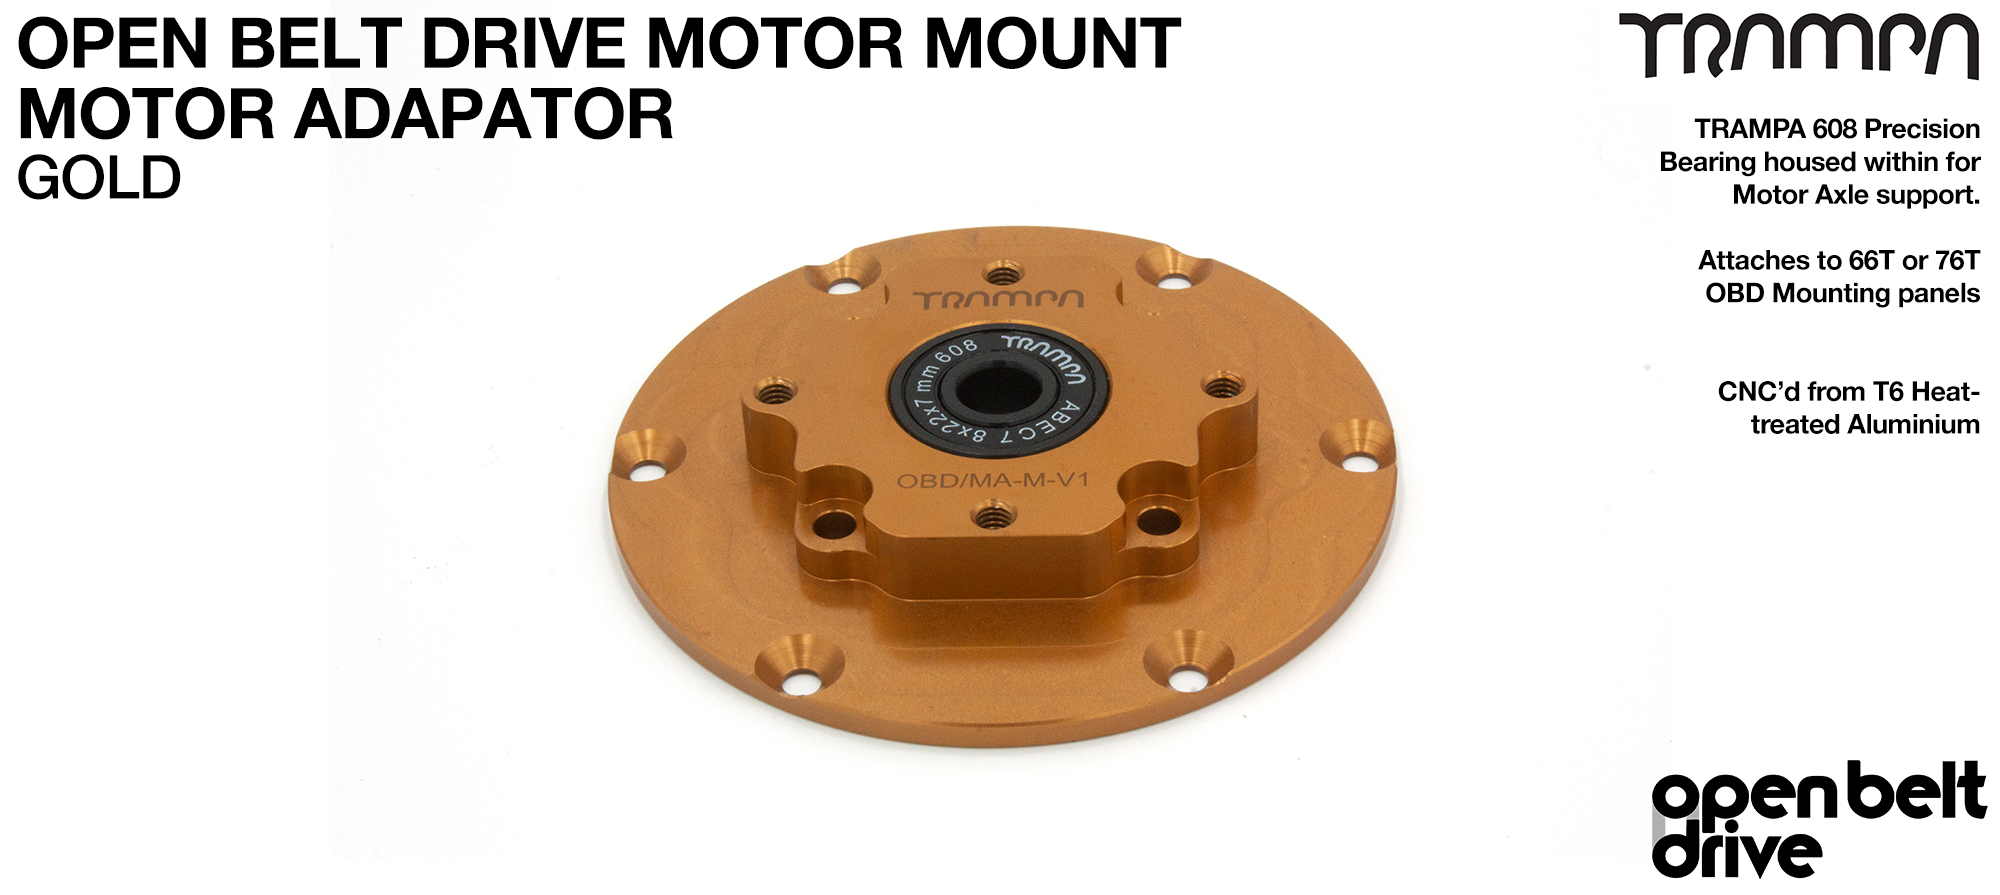 OBD Motor Adaptor with Housed Bearing - GOLD